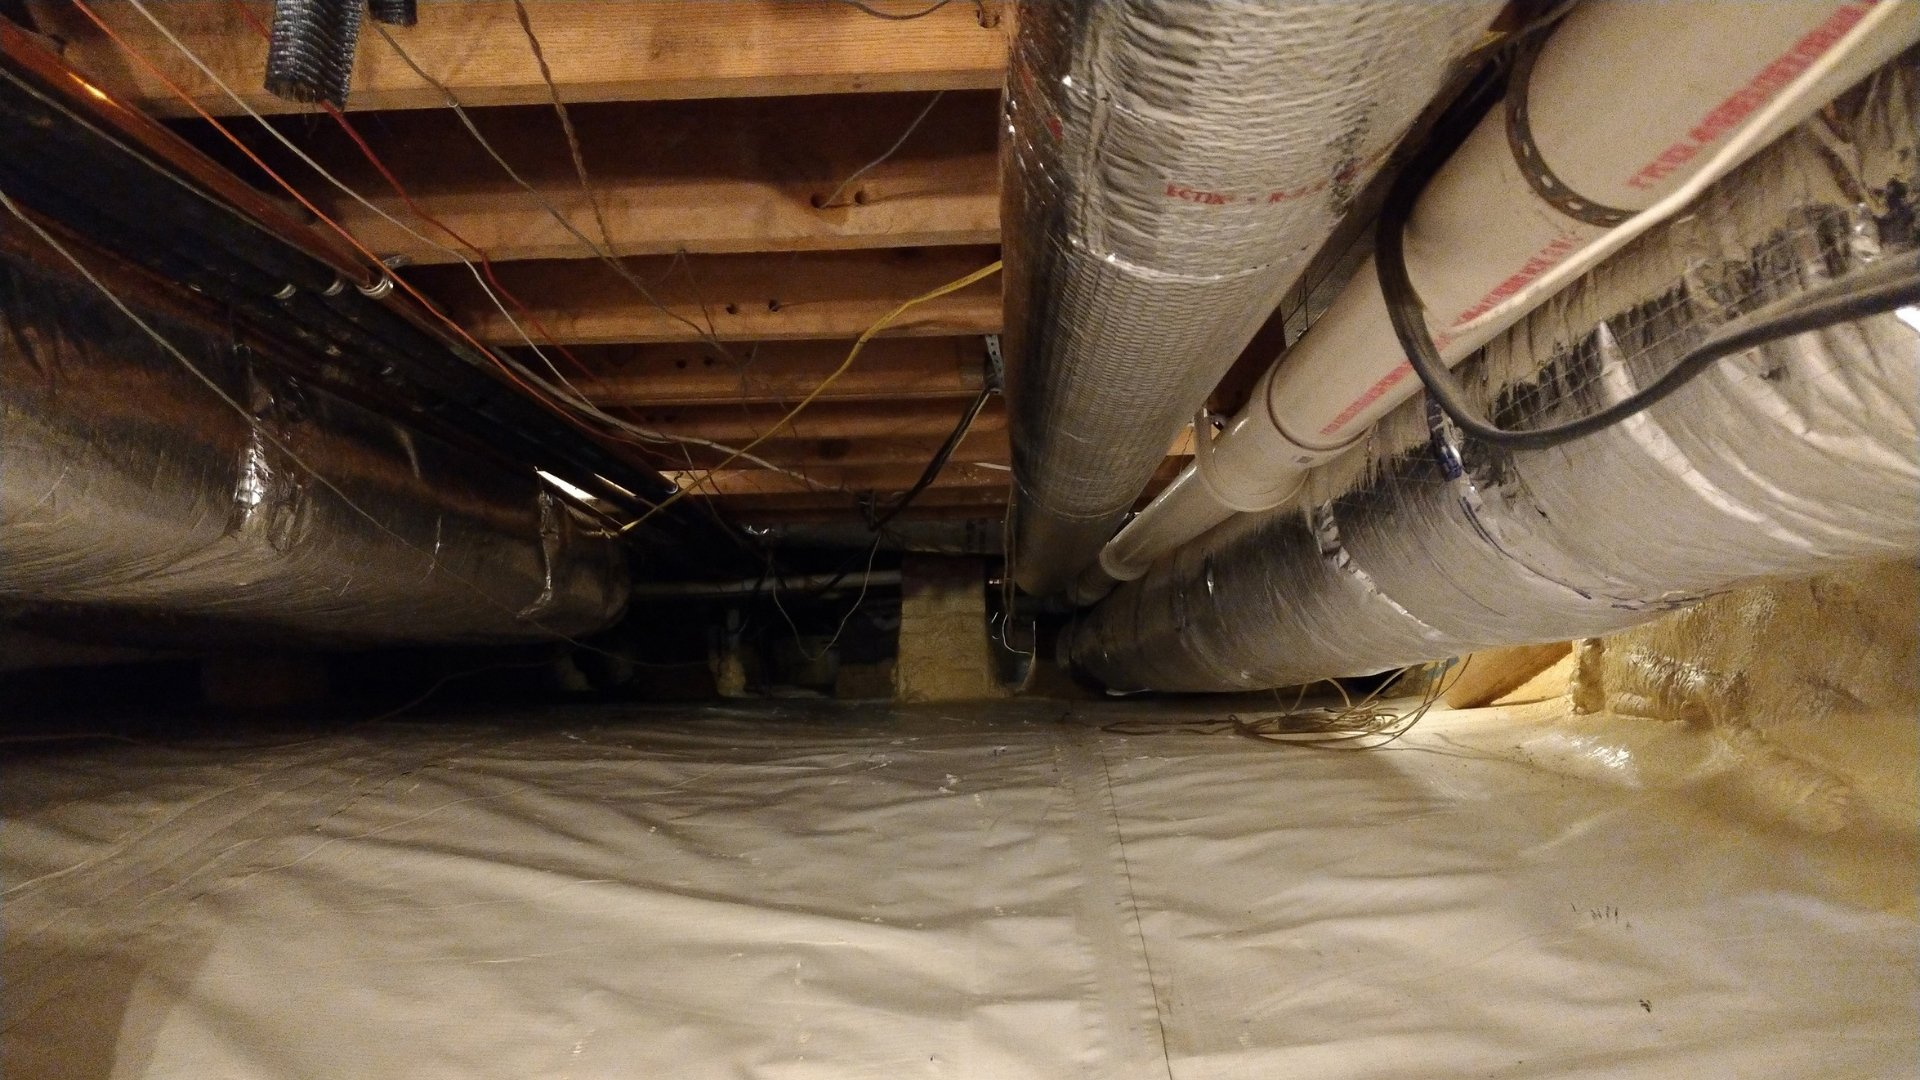 Duct Sealing in Crawlspace - Encapsulation Page Gallery